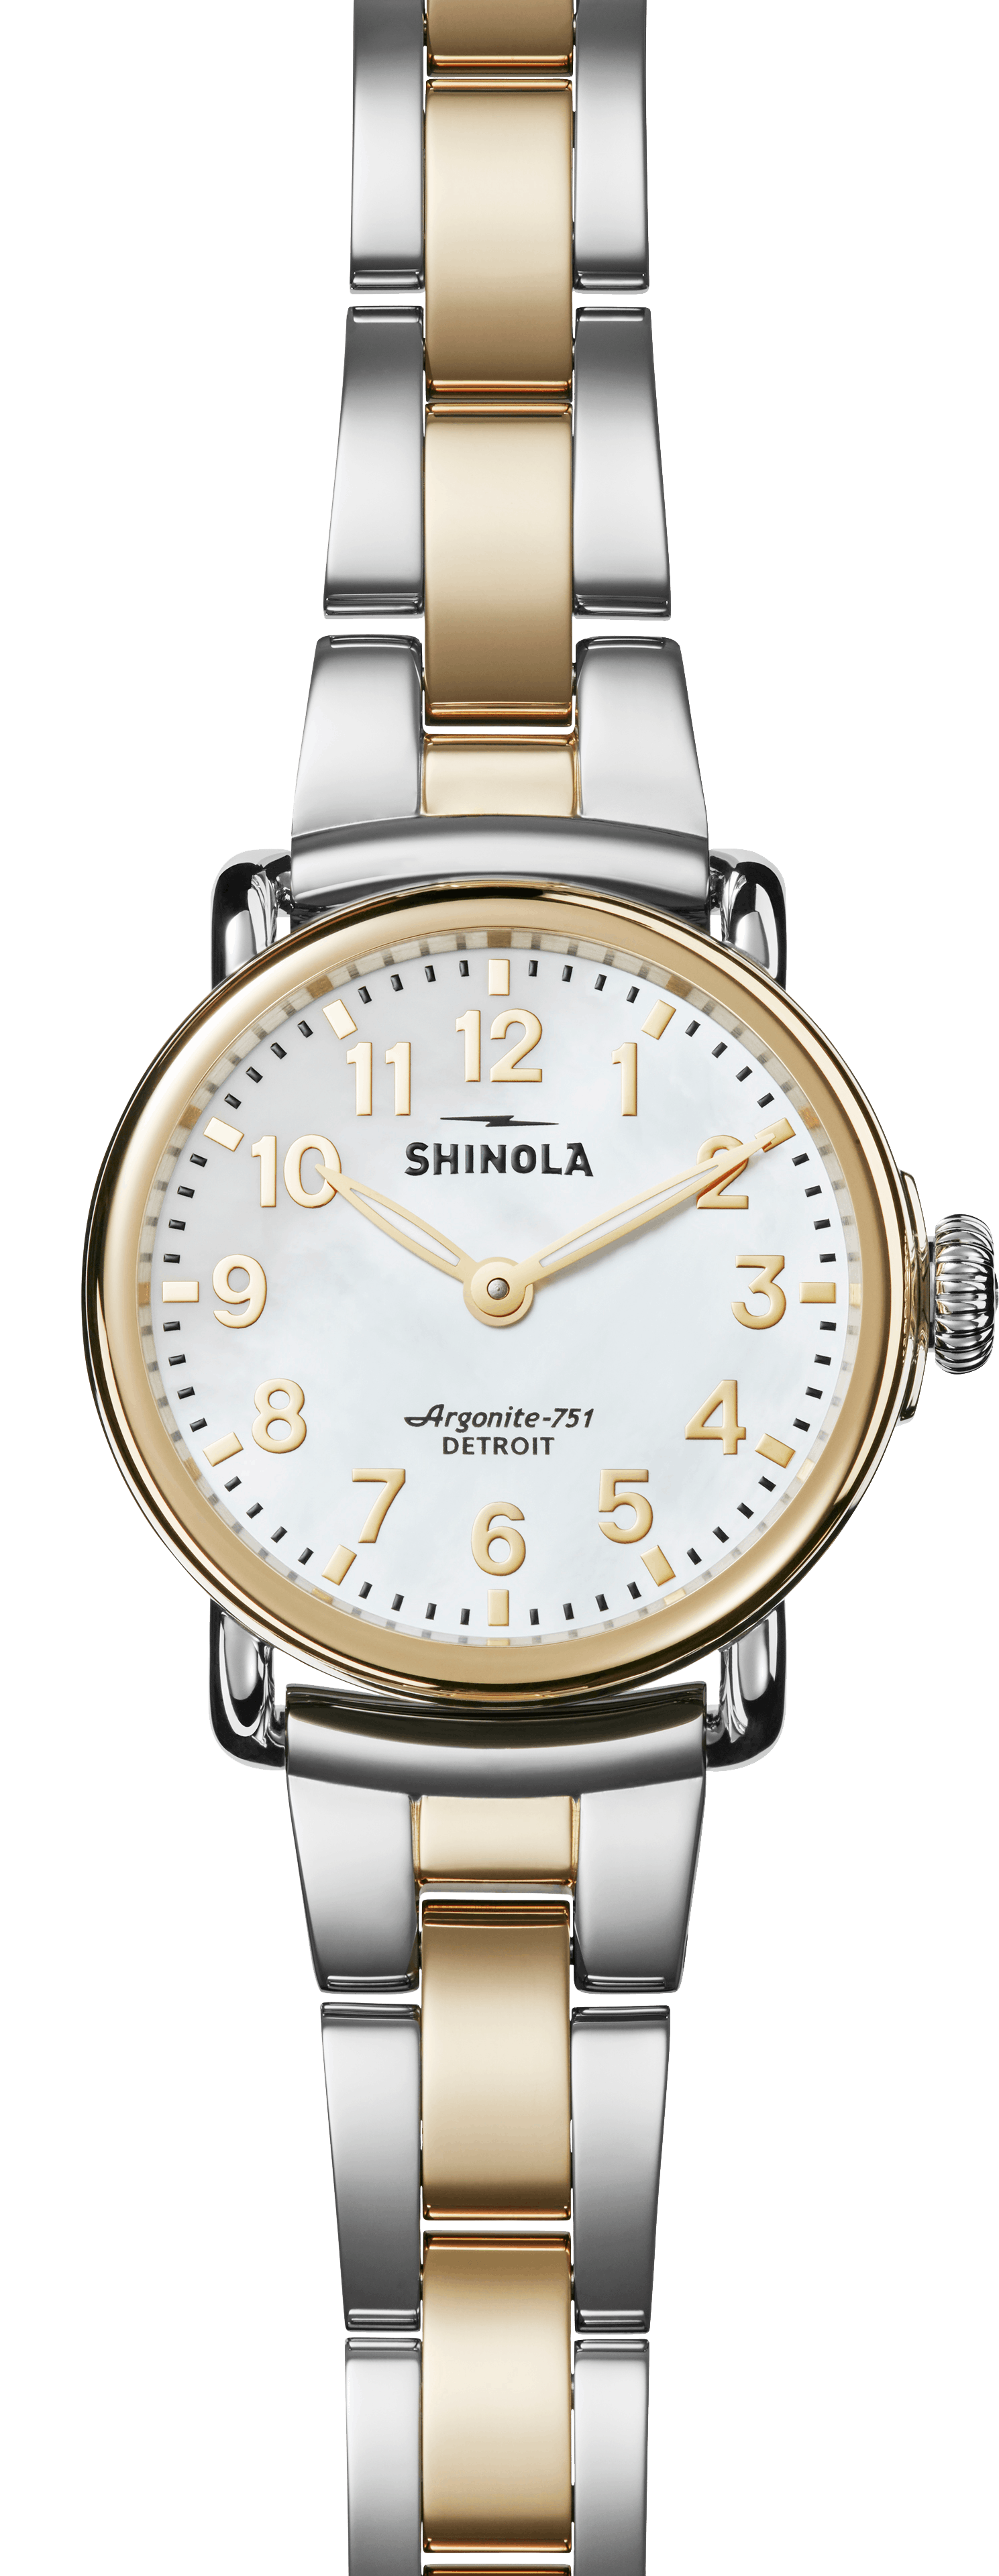 Shinola Gomelsky Watch | Shinola Watch | Shinola Watches Review